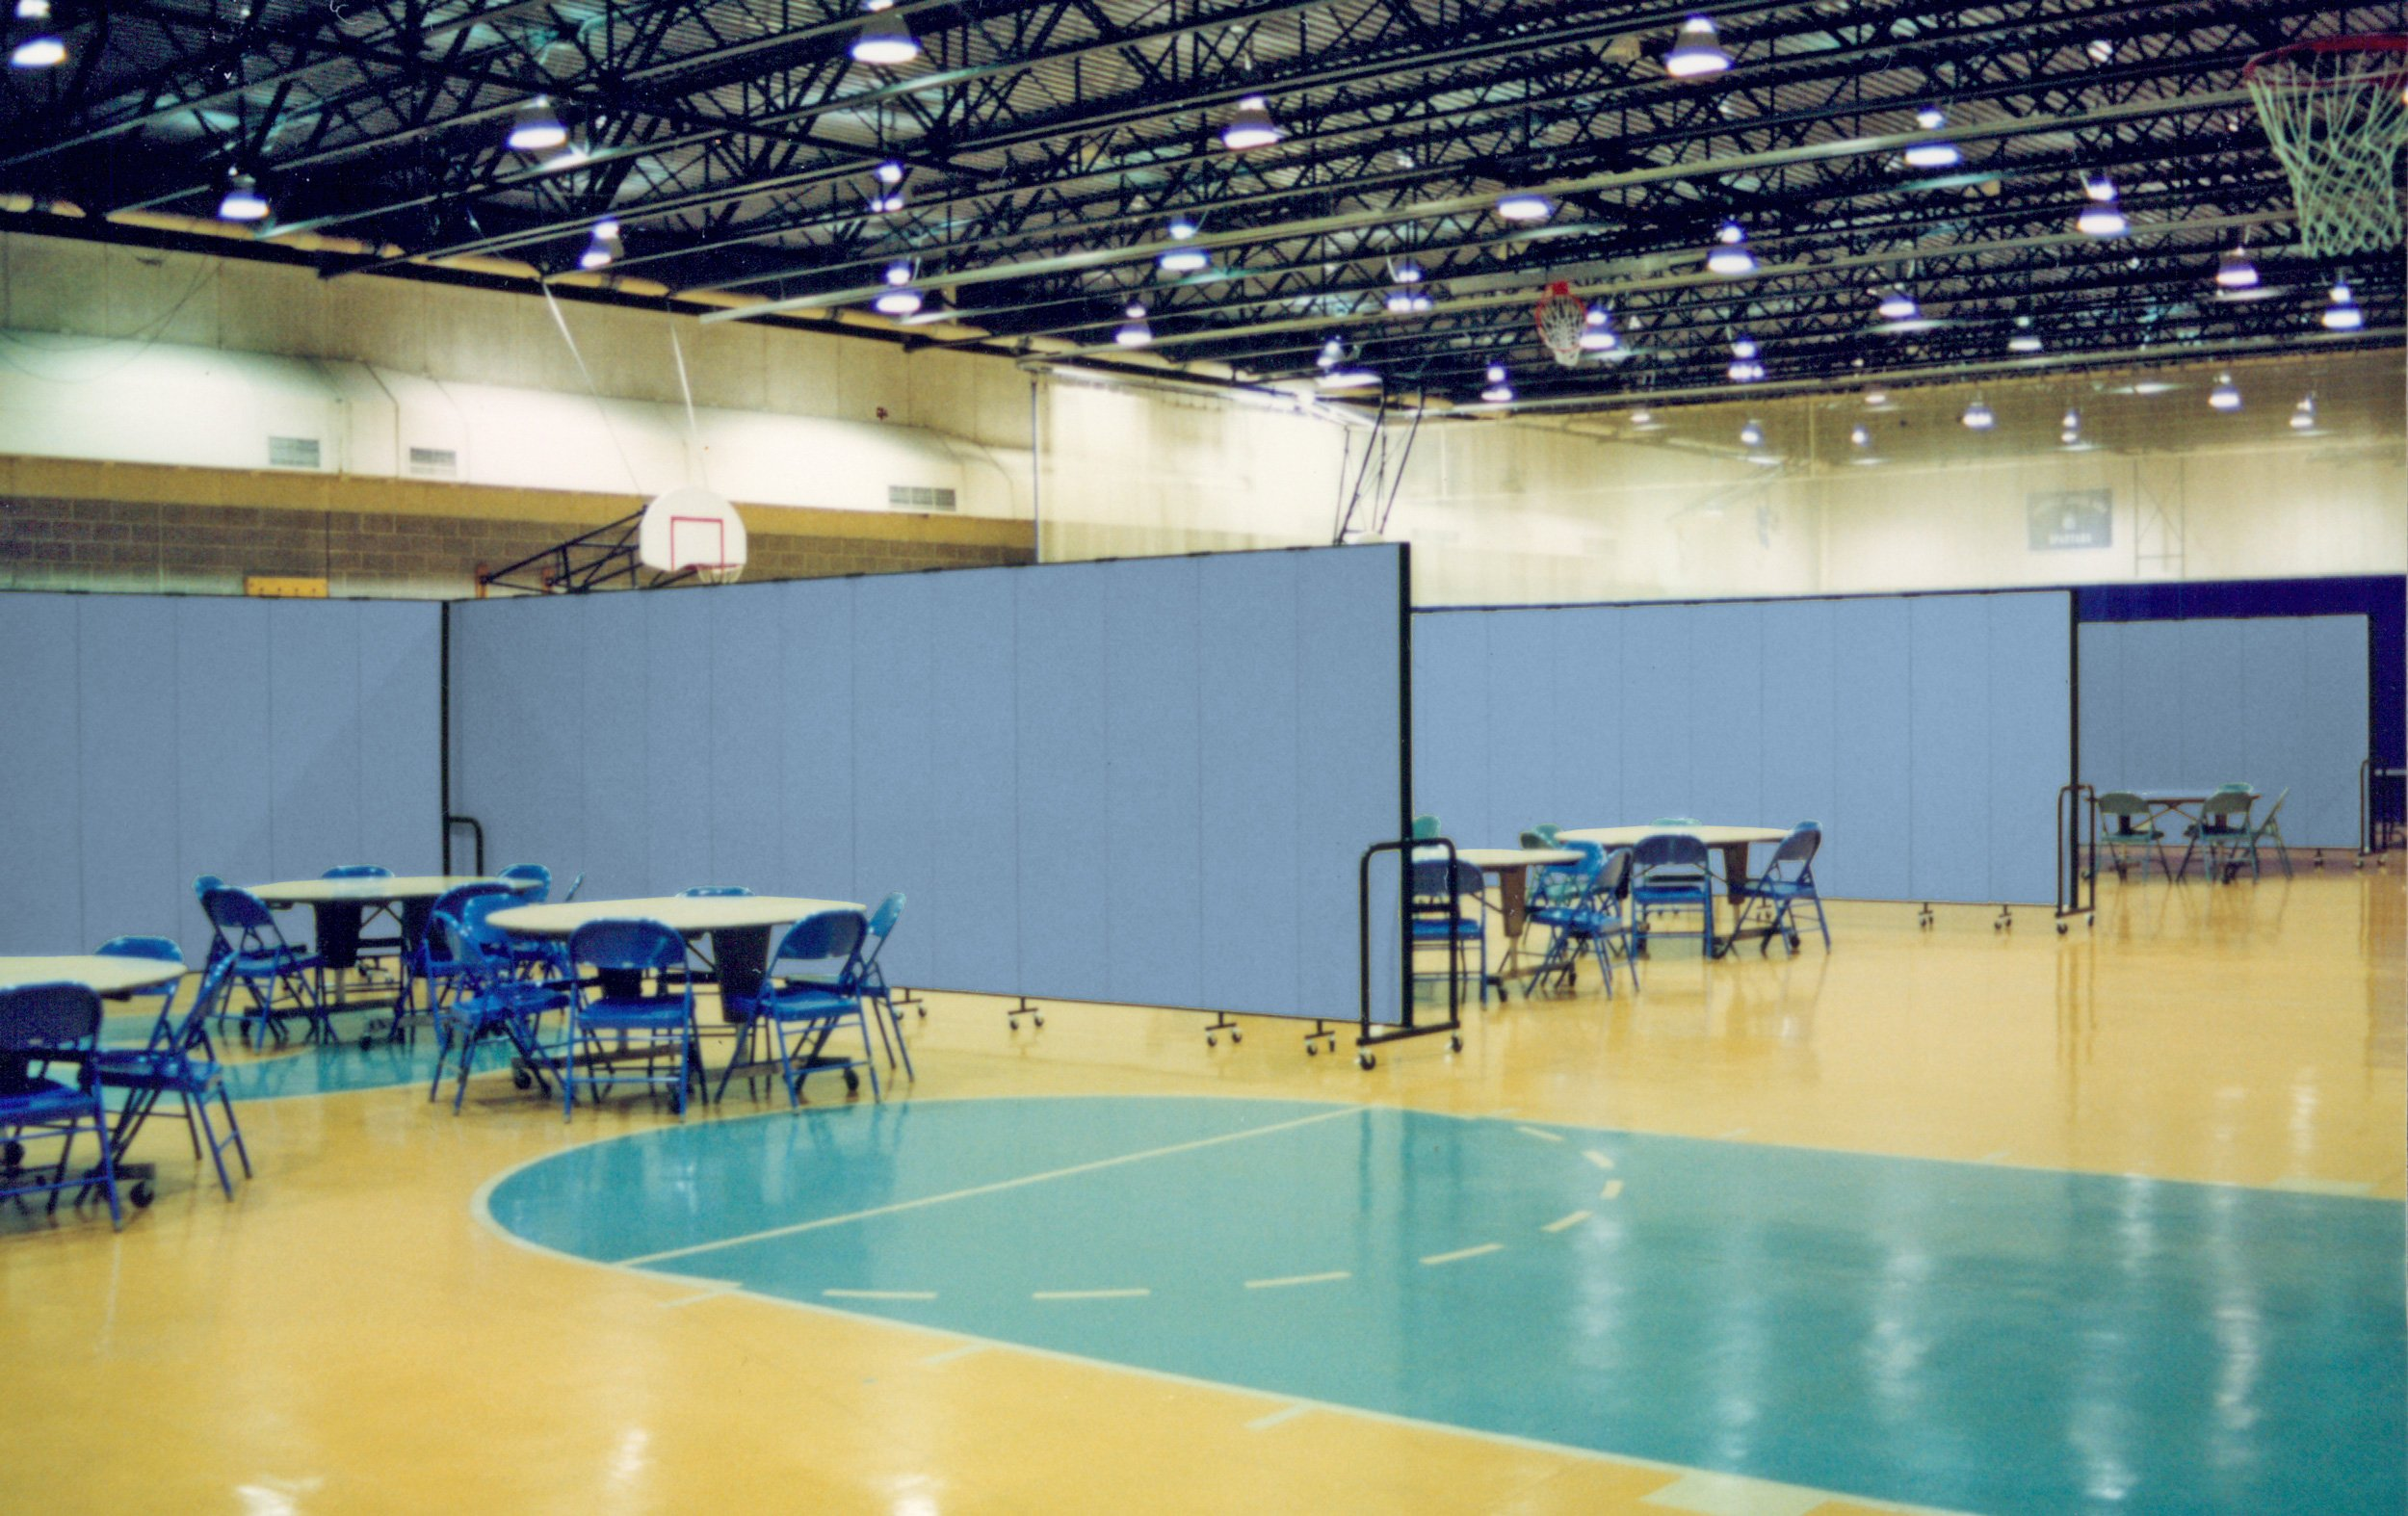 Each classroom shown is approximately 600 sq. ft.!